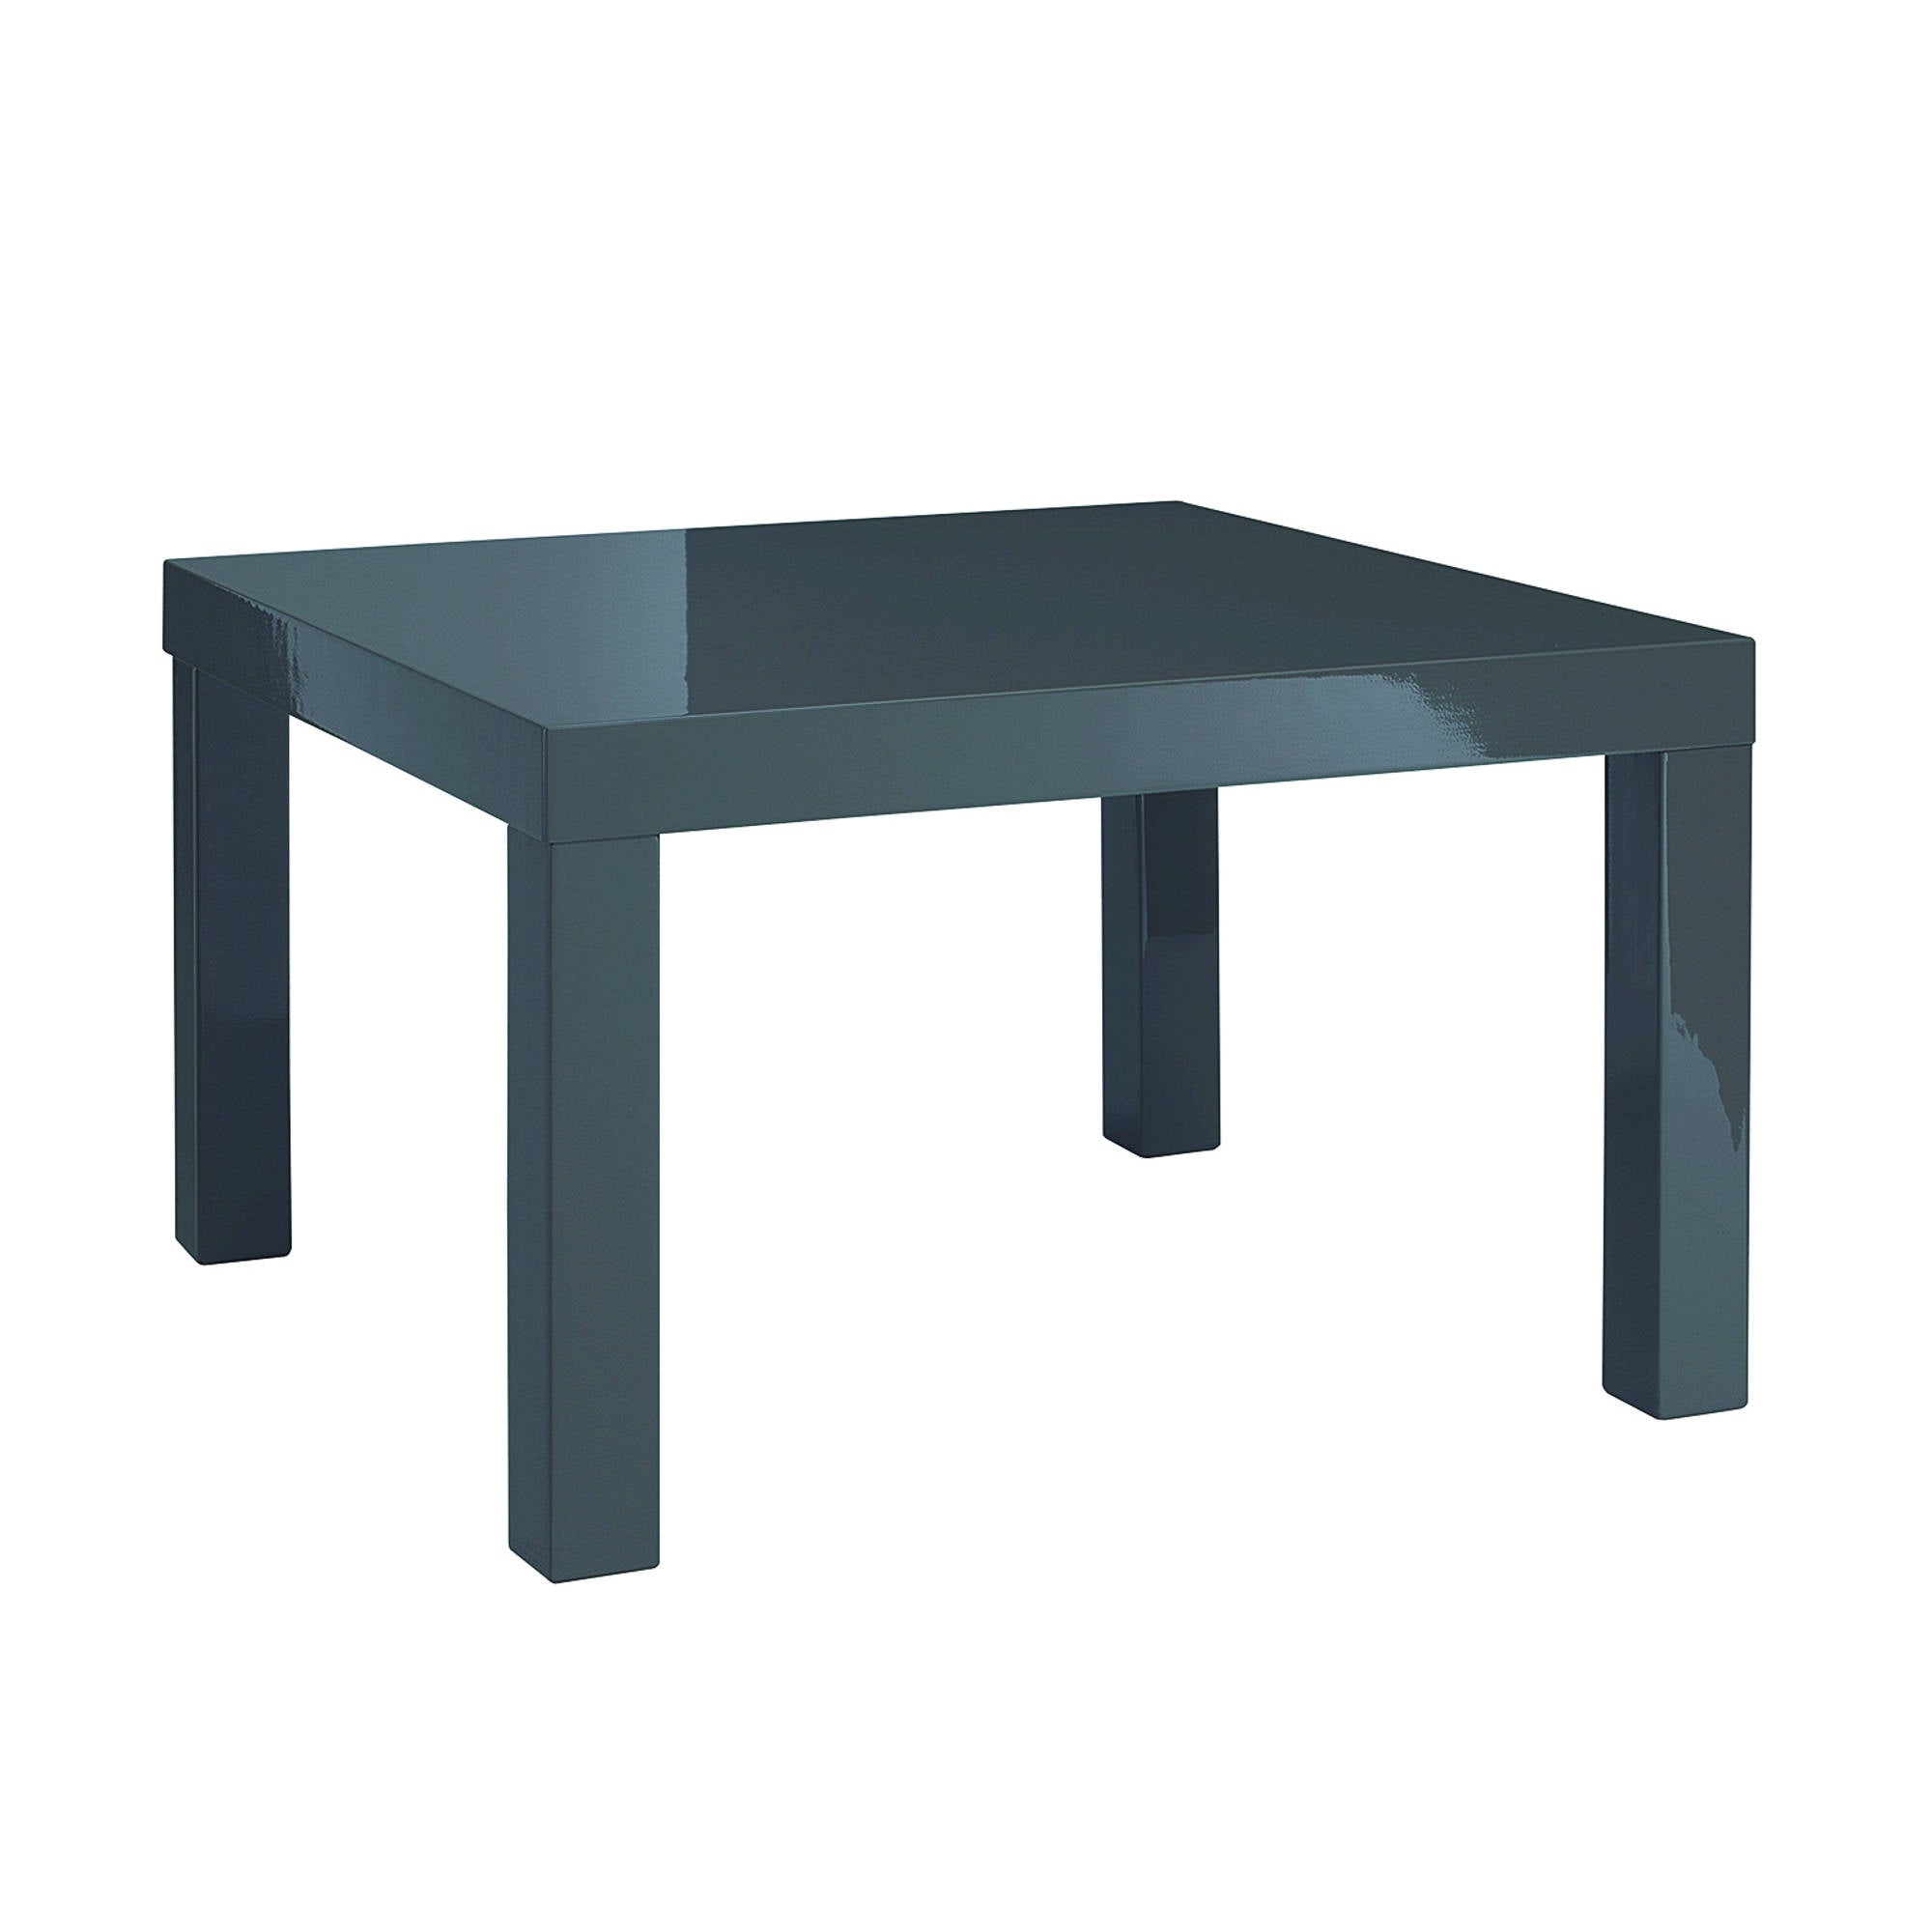 Sterling Small Dining Table in Charcoal - Ezzo